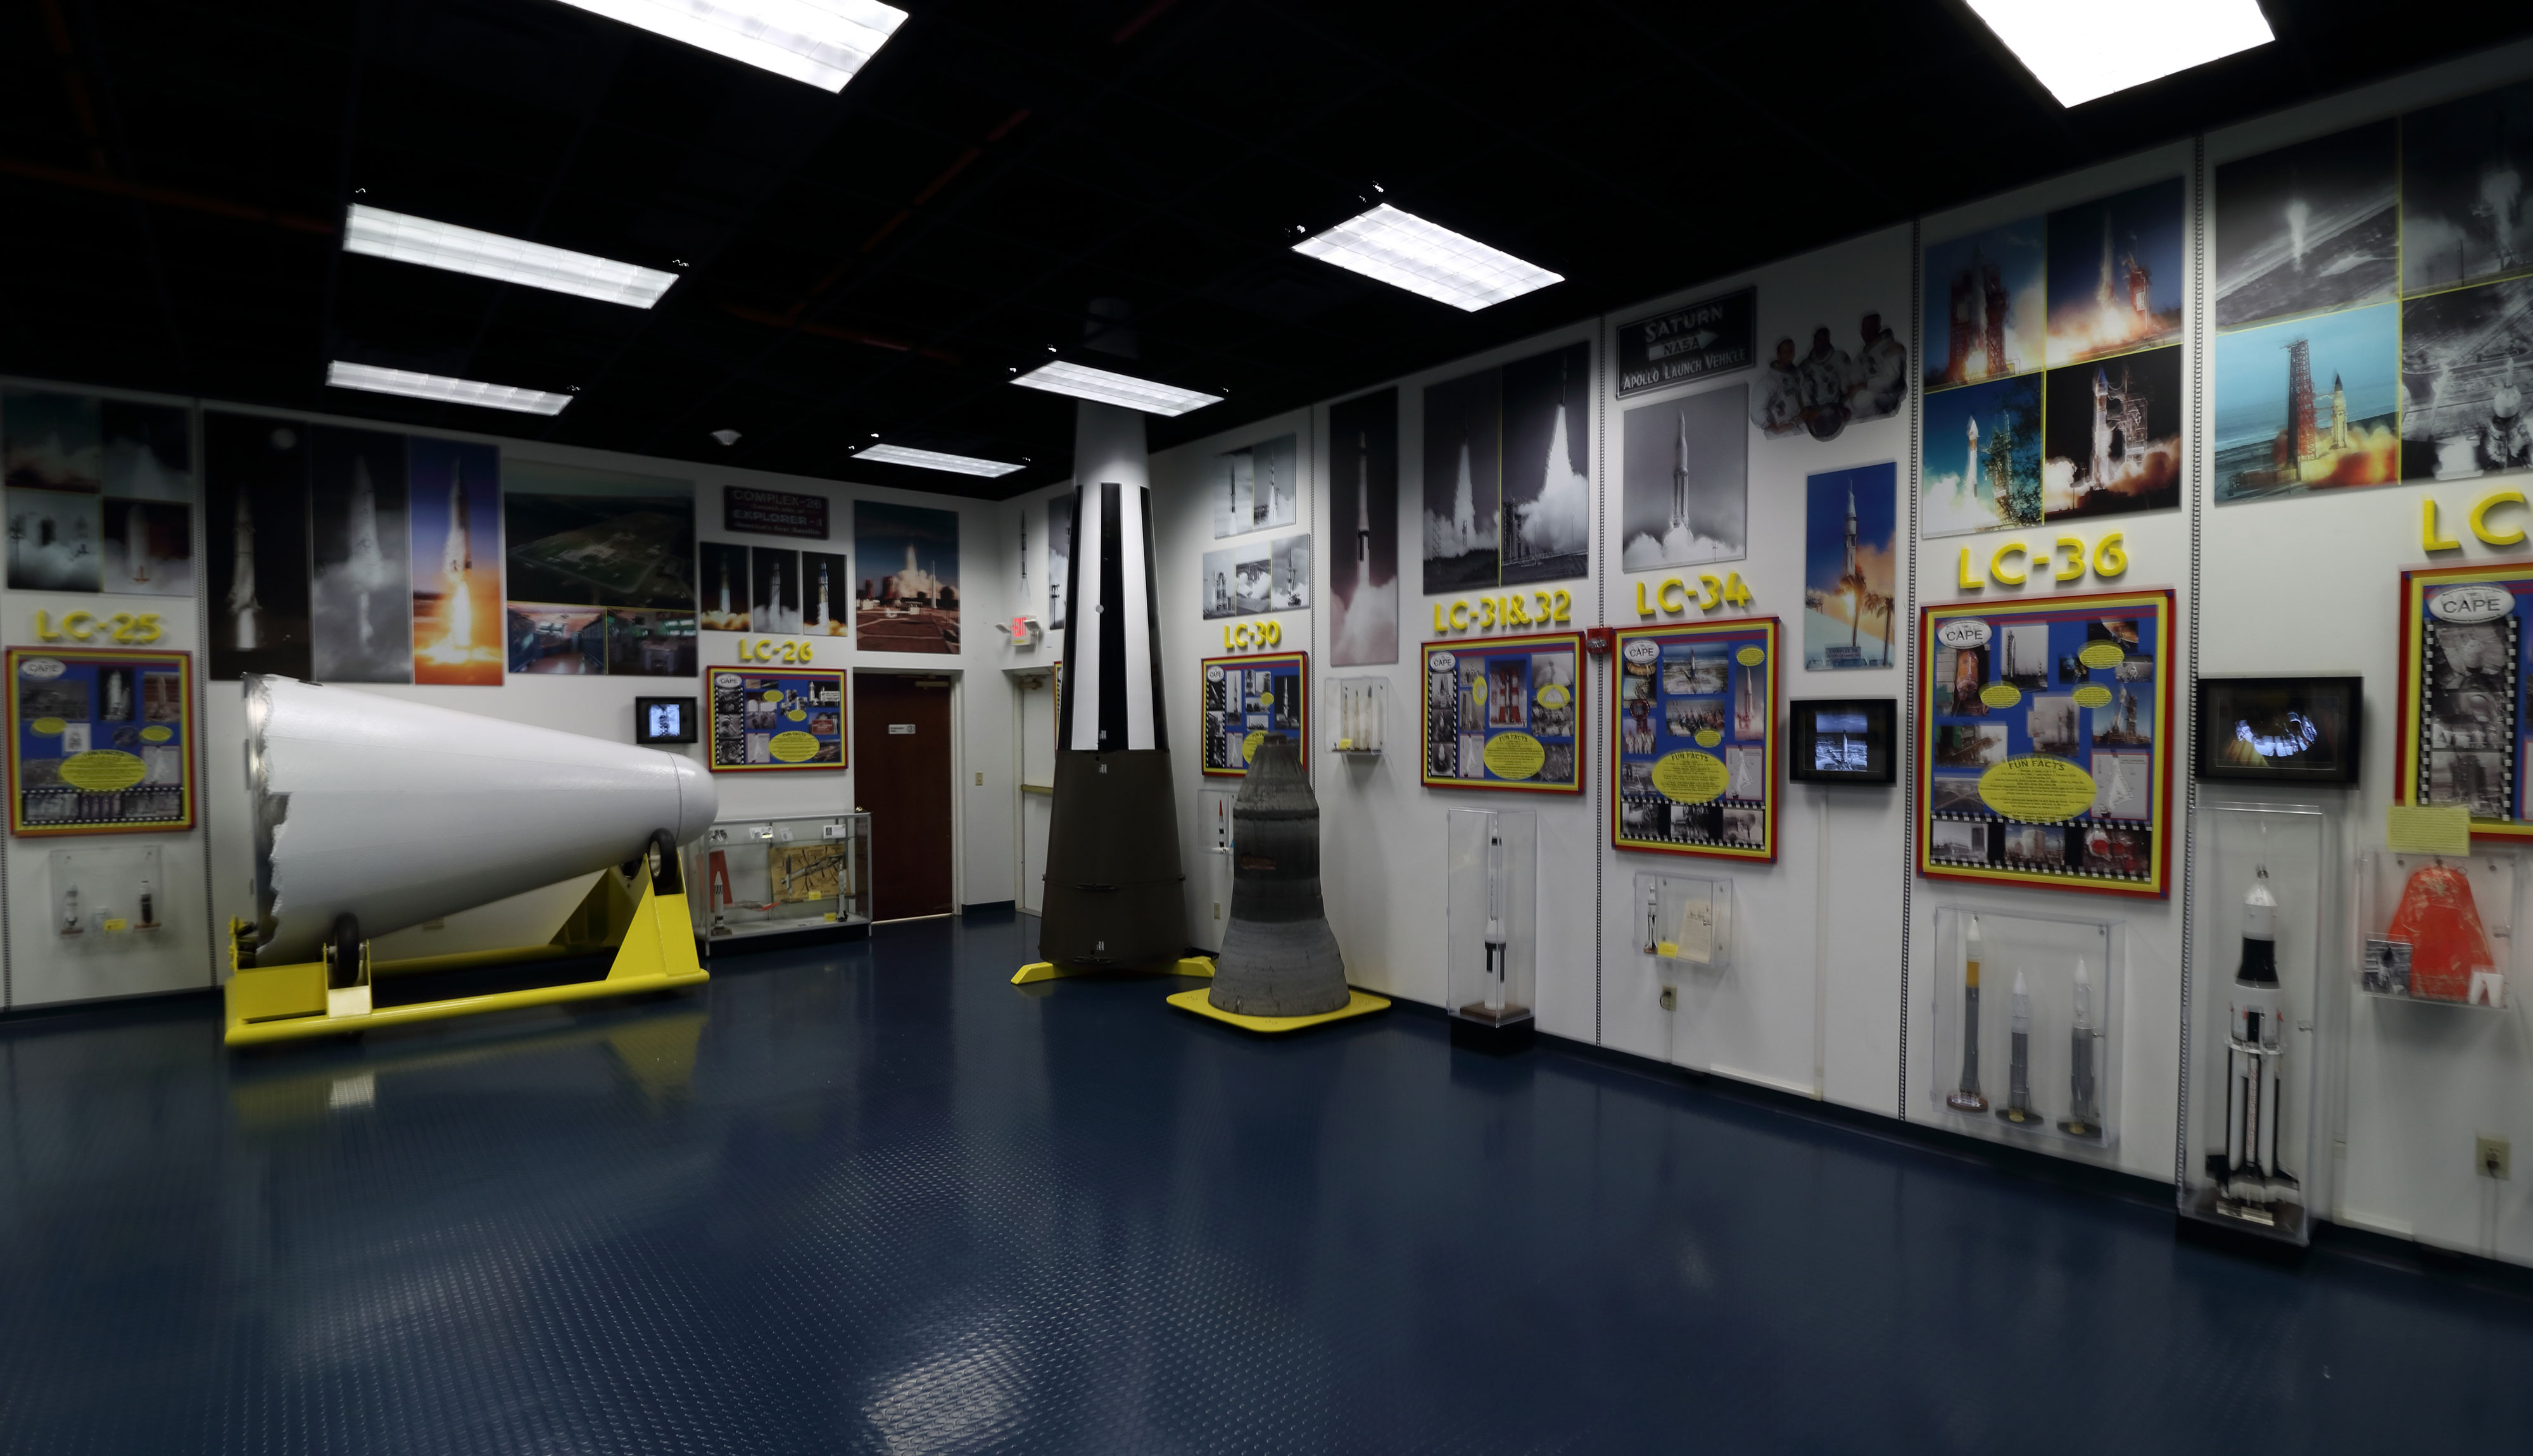 Among the artifacts on display at the Air Force Space and Missile History Center are an original Gemini console (top left), an Atlas sustainer rocket engine (top roght), and a Jupiter rocket nose cone (white cone in bottom photo). Credit: Lloyd Campbell